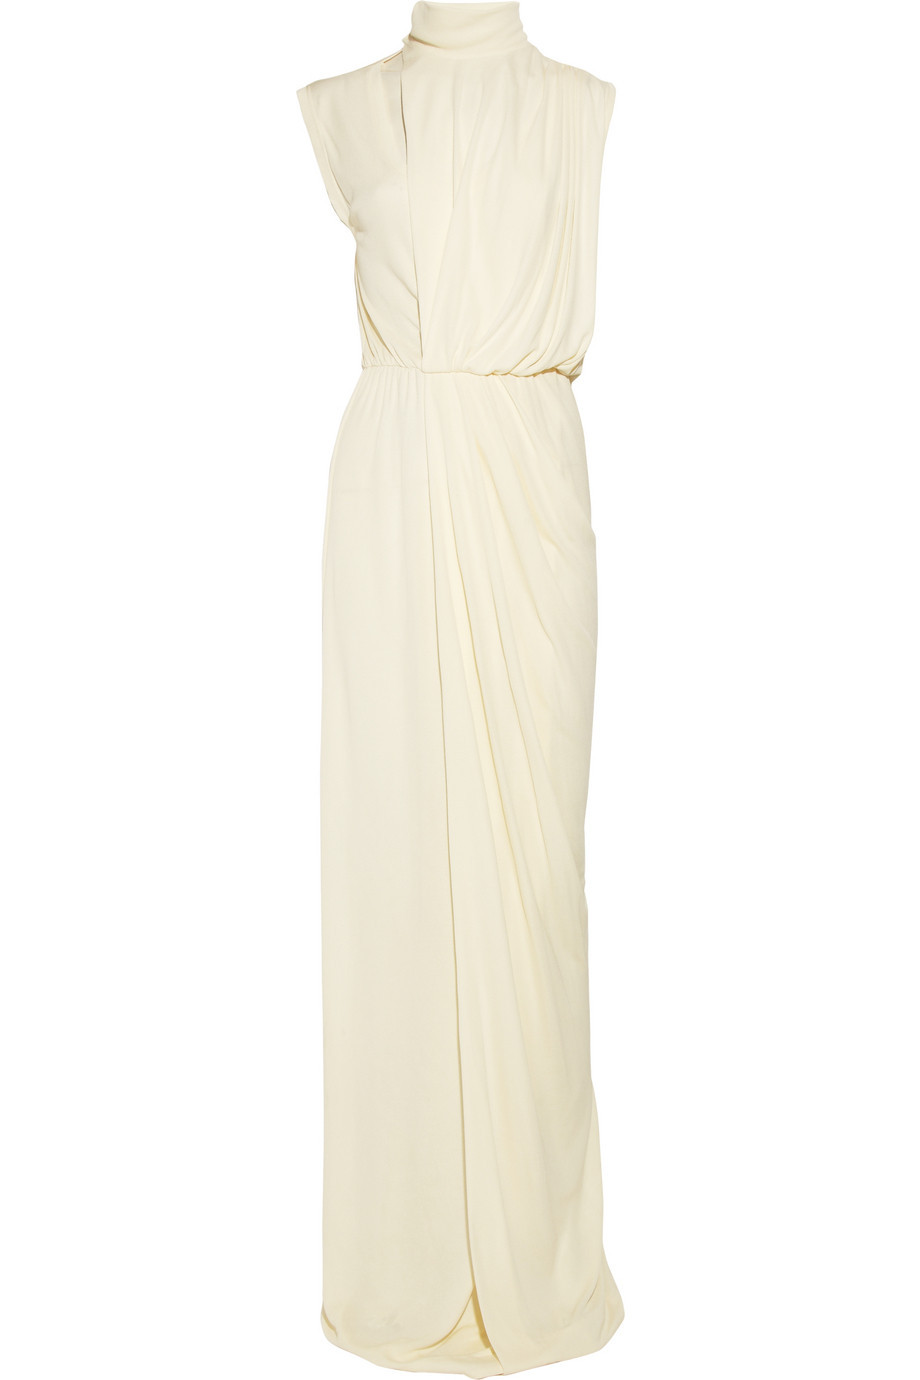 draped crepe wedding dress high neck